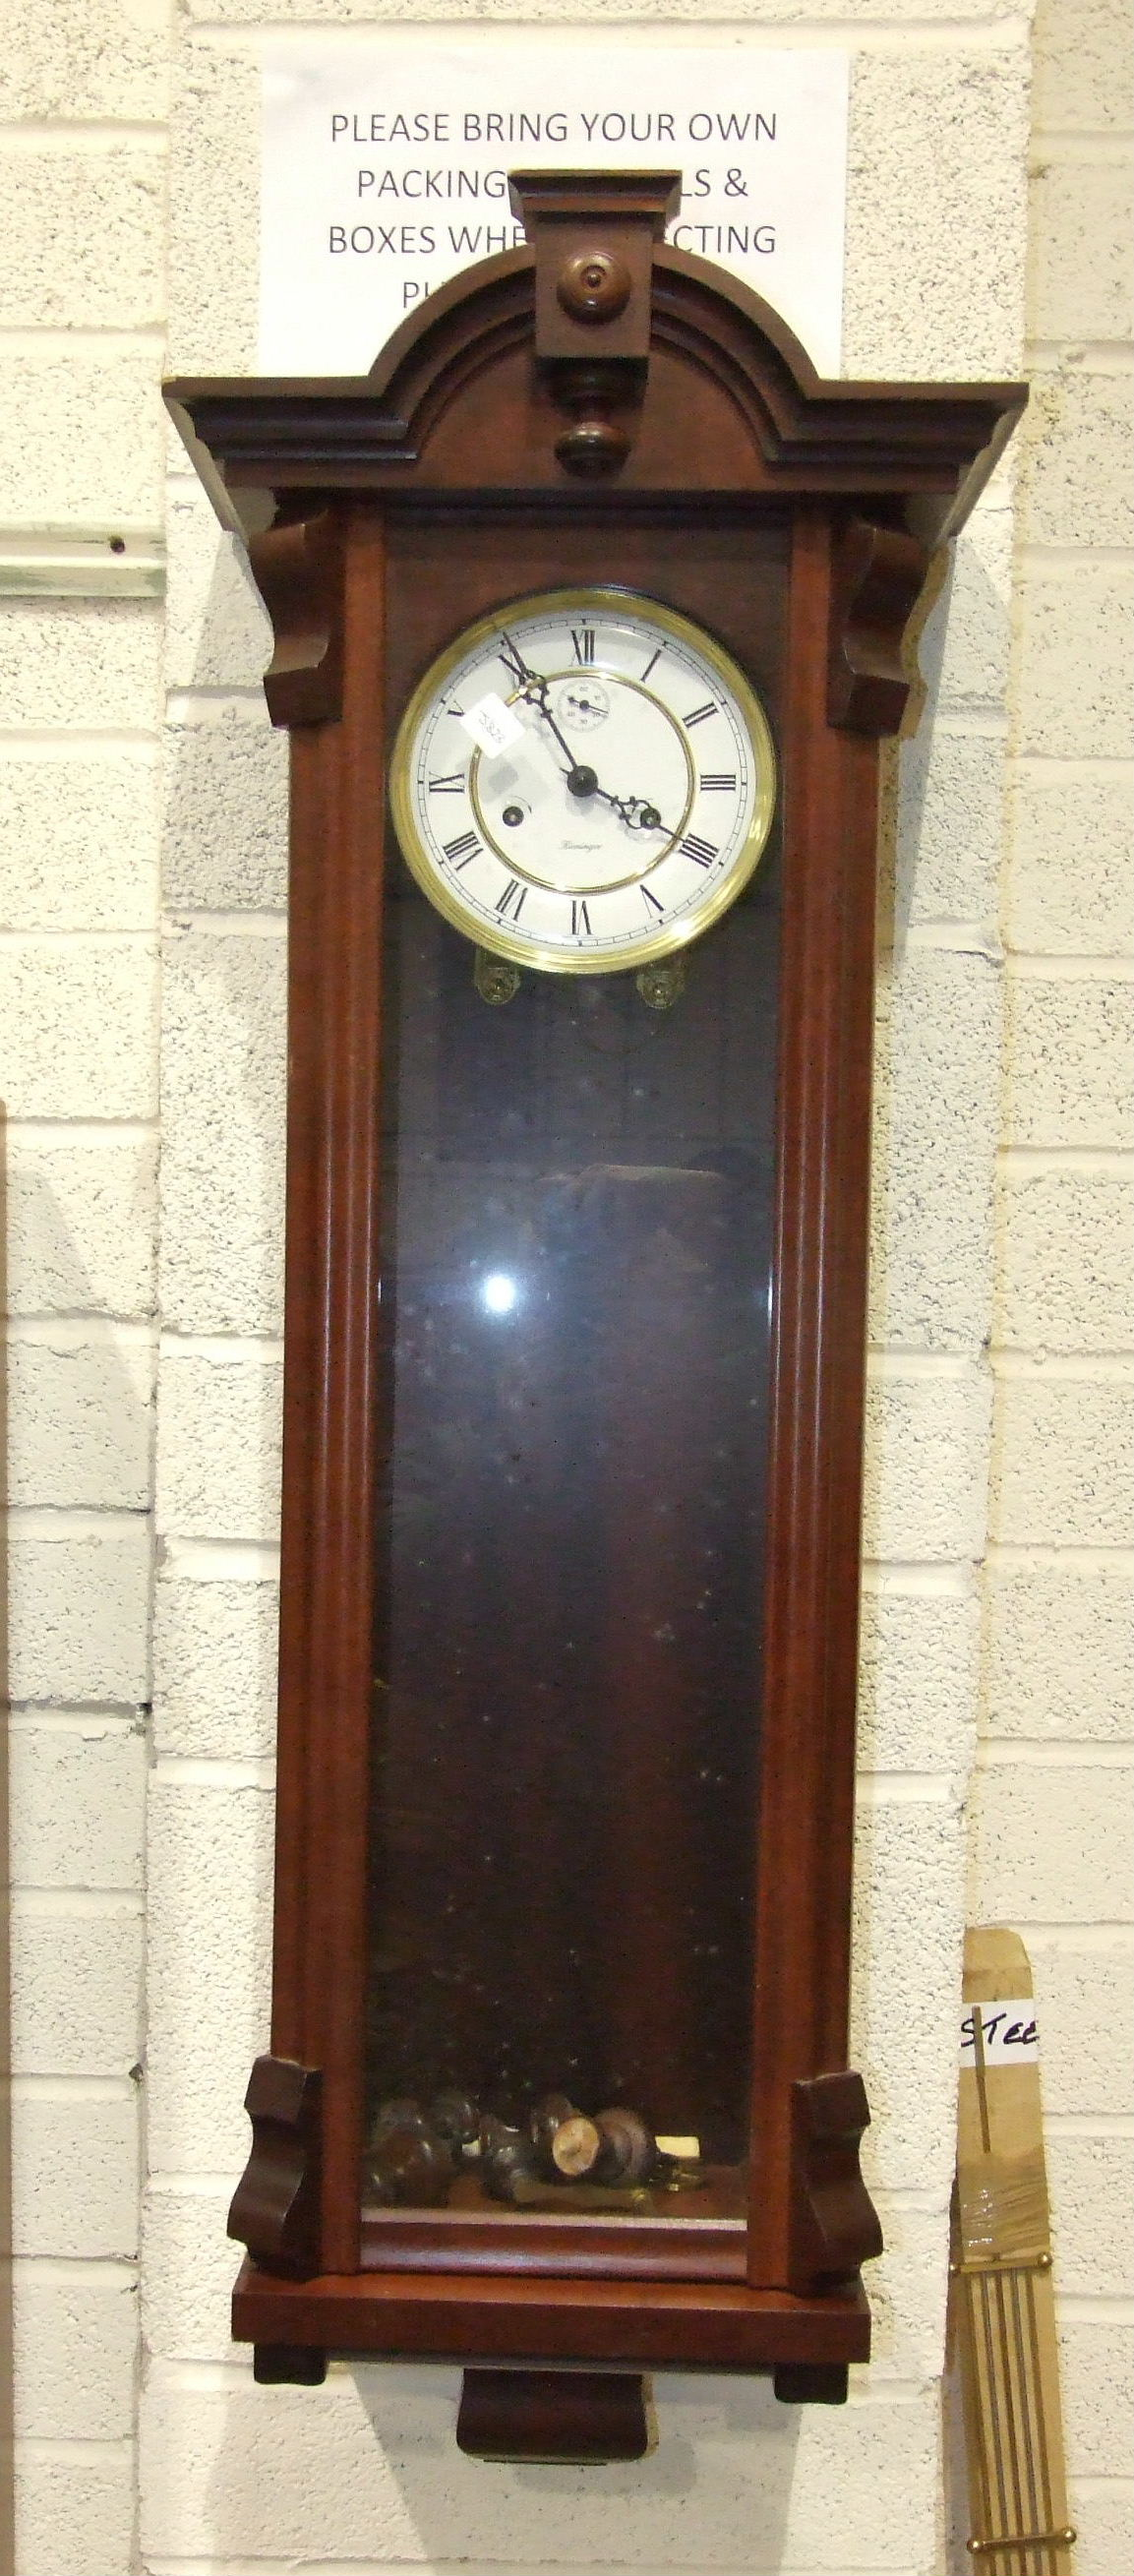 Lot 40 - A modern mahogany finish Vienna-type wall clock with gong-striking movement, enamel dial with